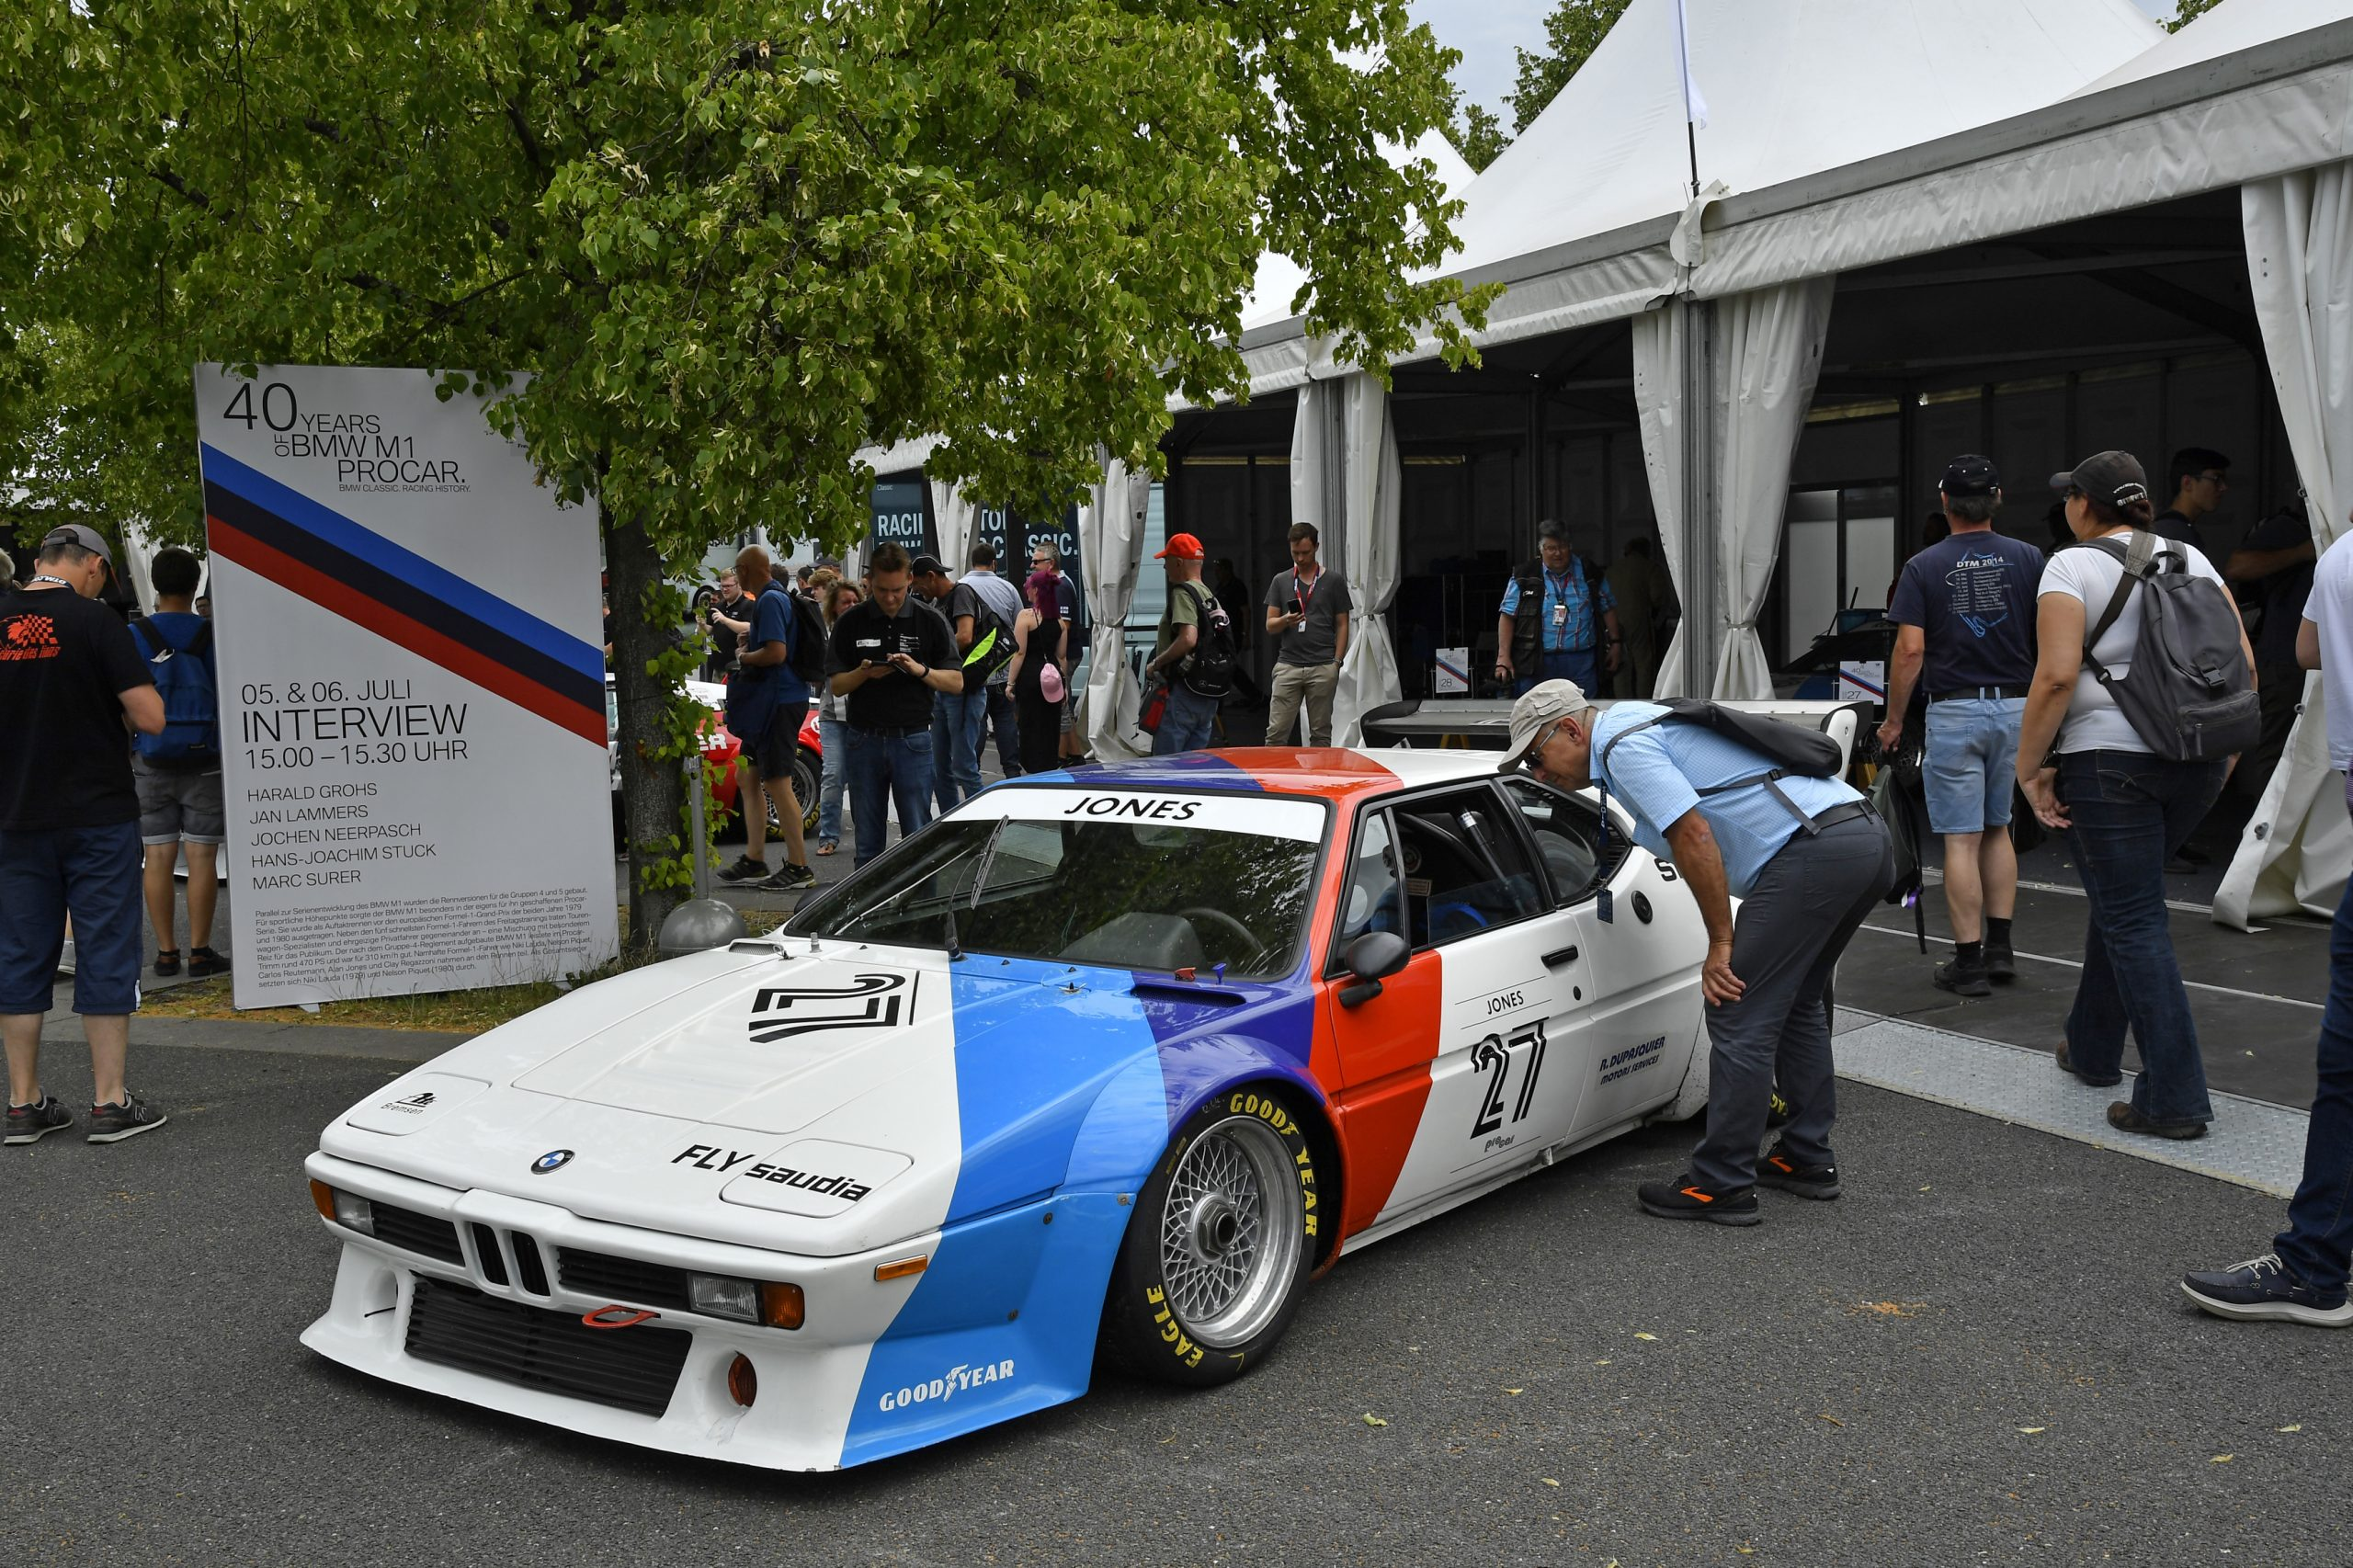 fan bmw m1 procar jones norisring